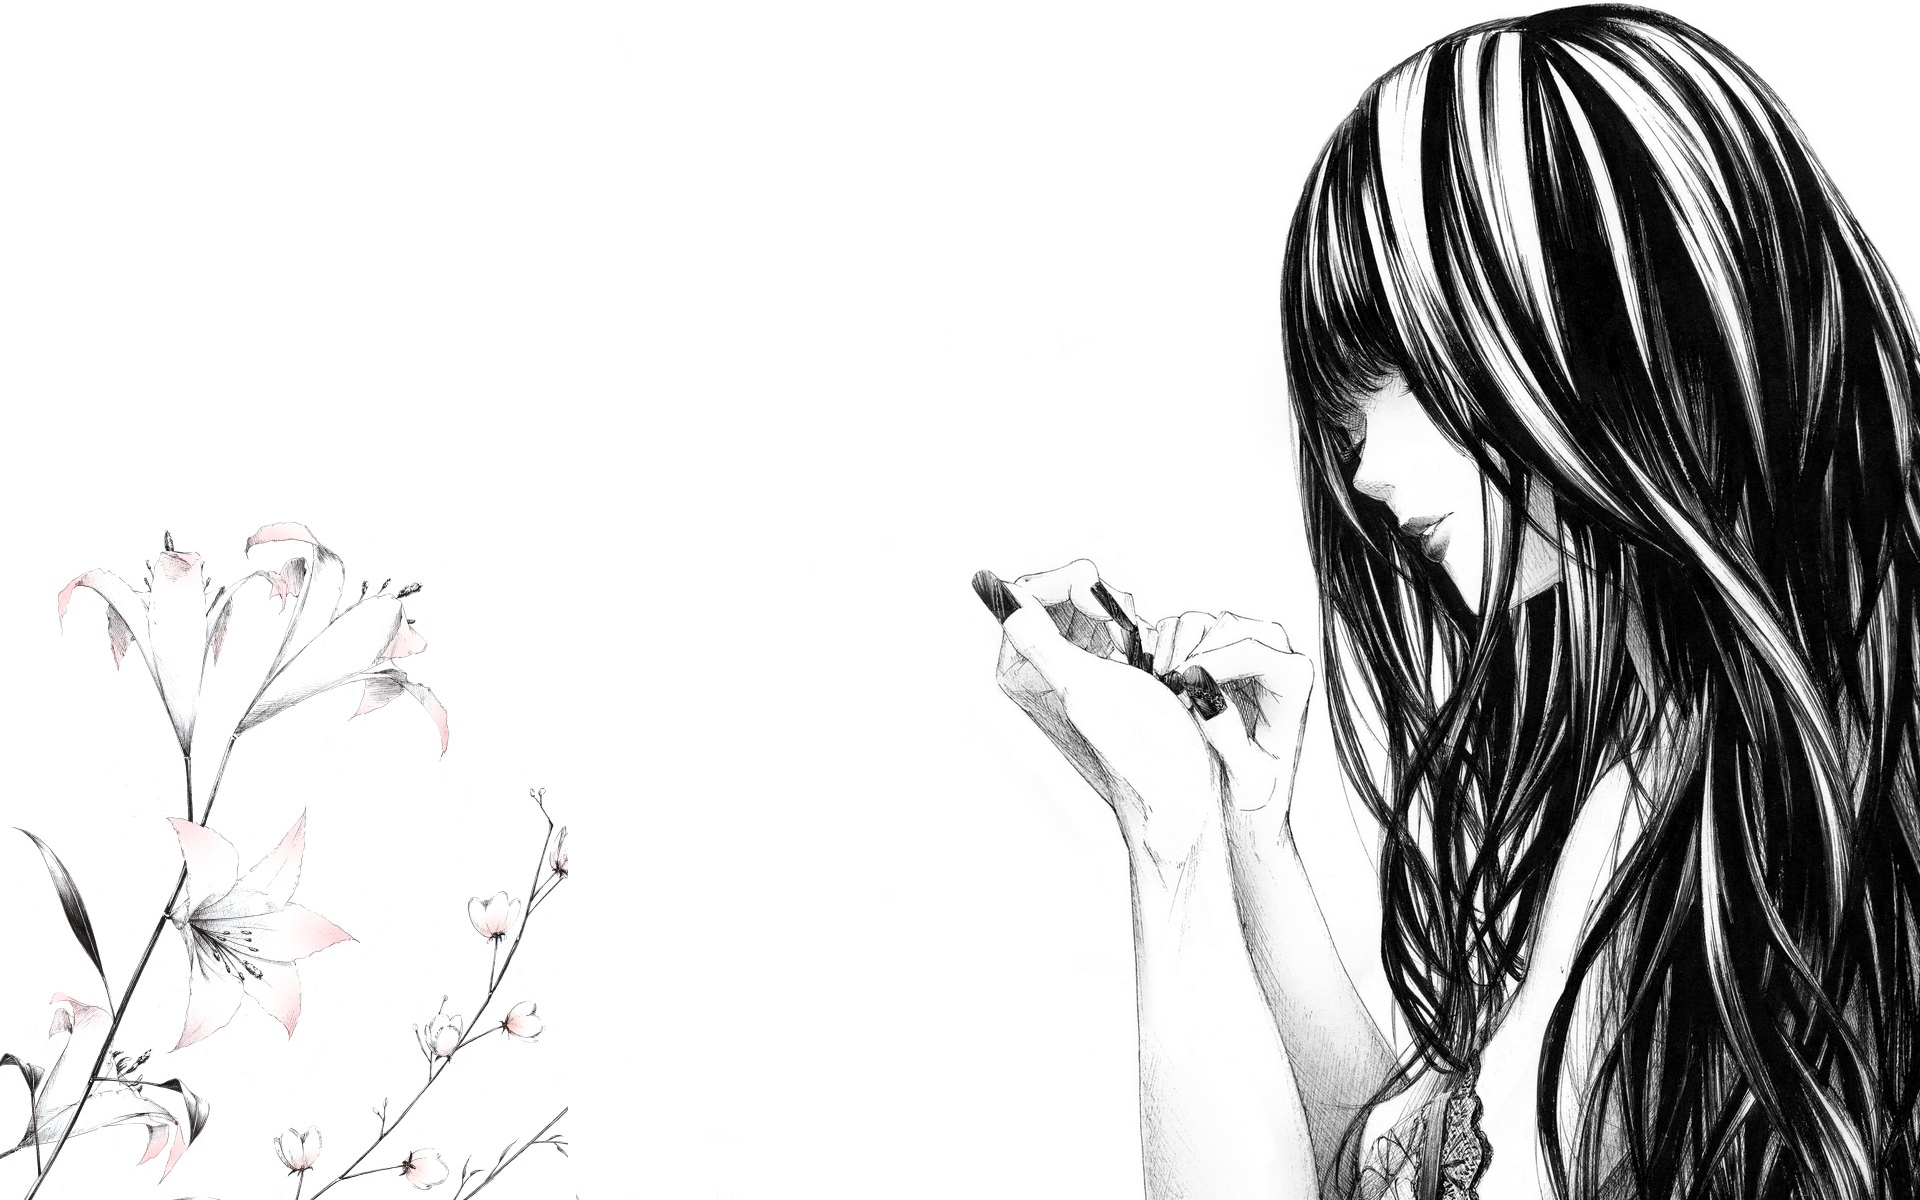 unique animewall: wallpaper anime, bw, girl, black and white